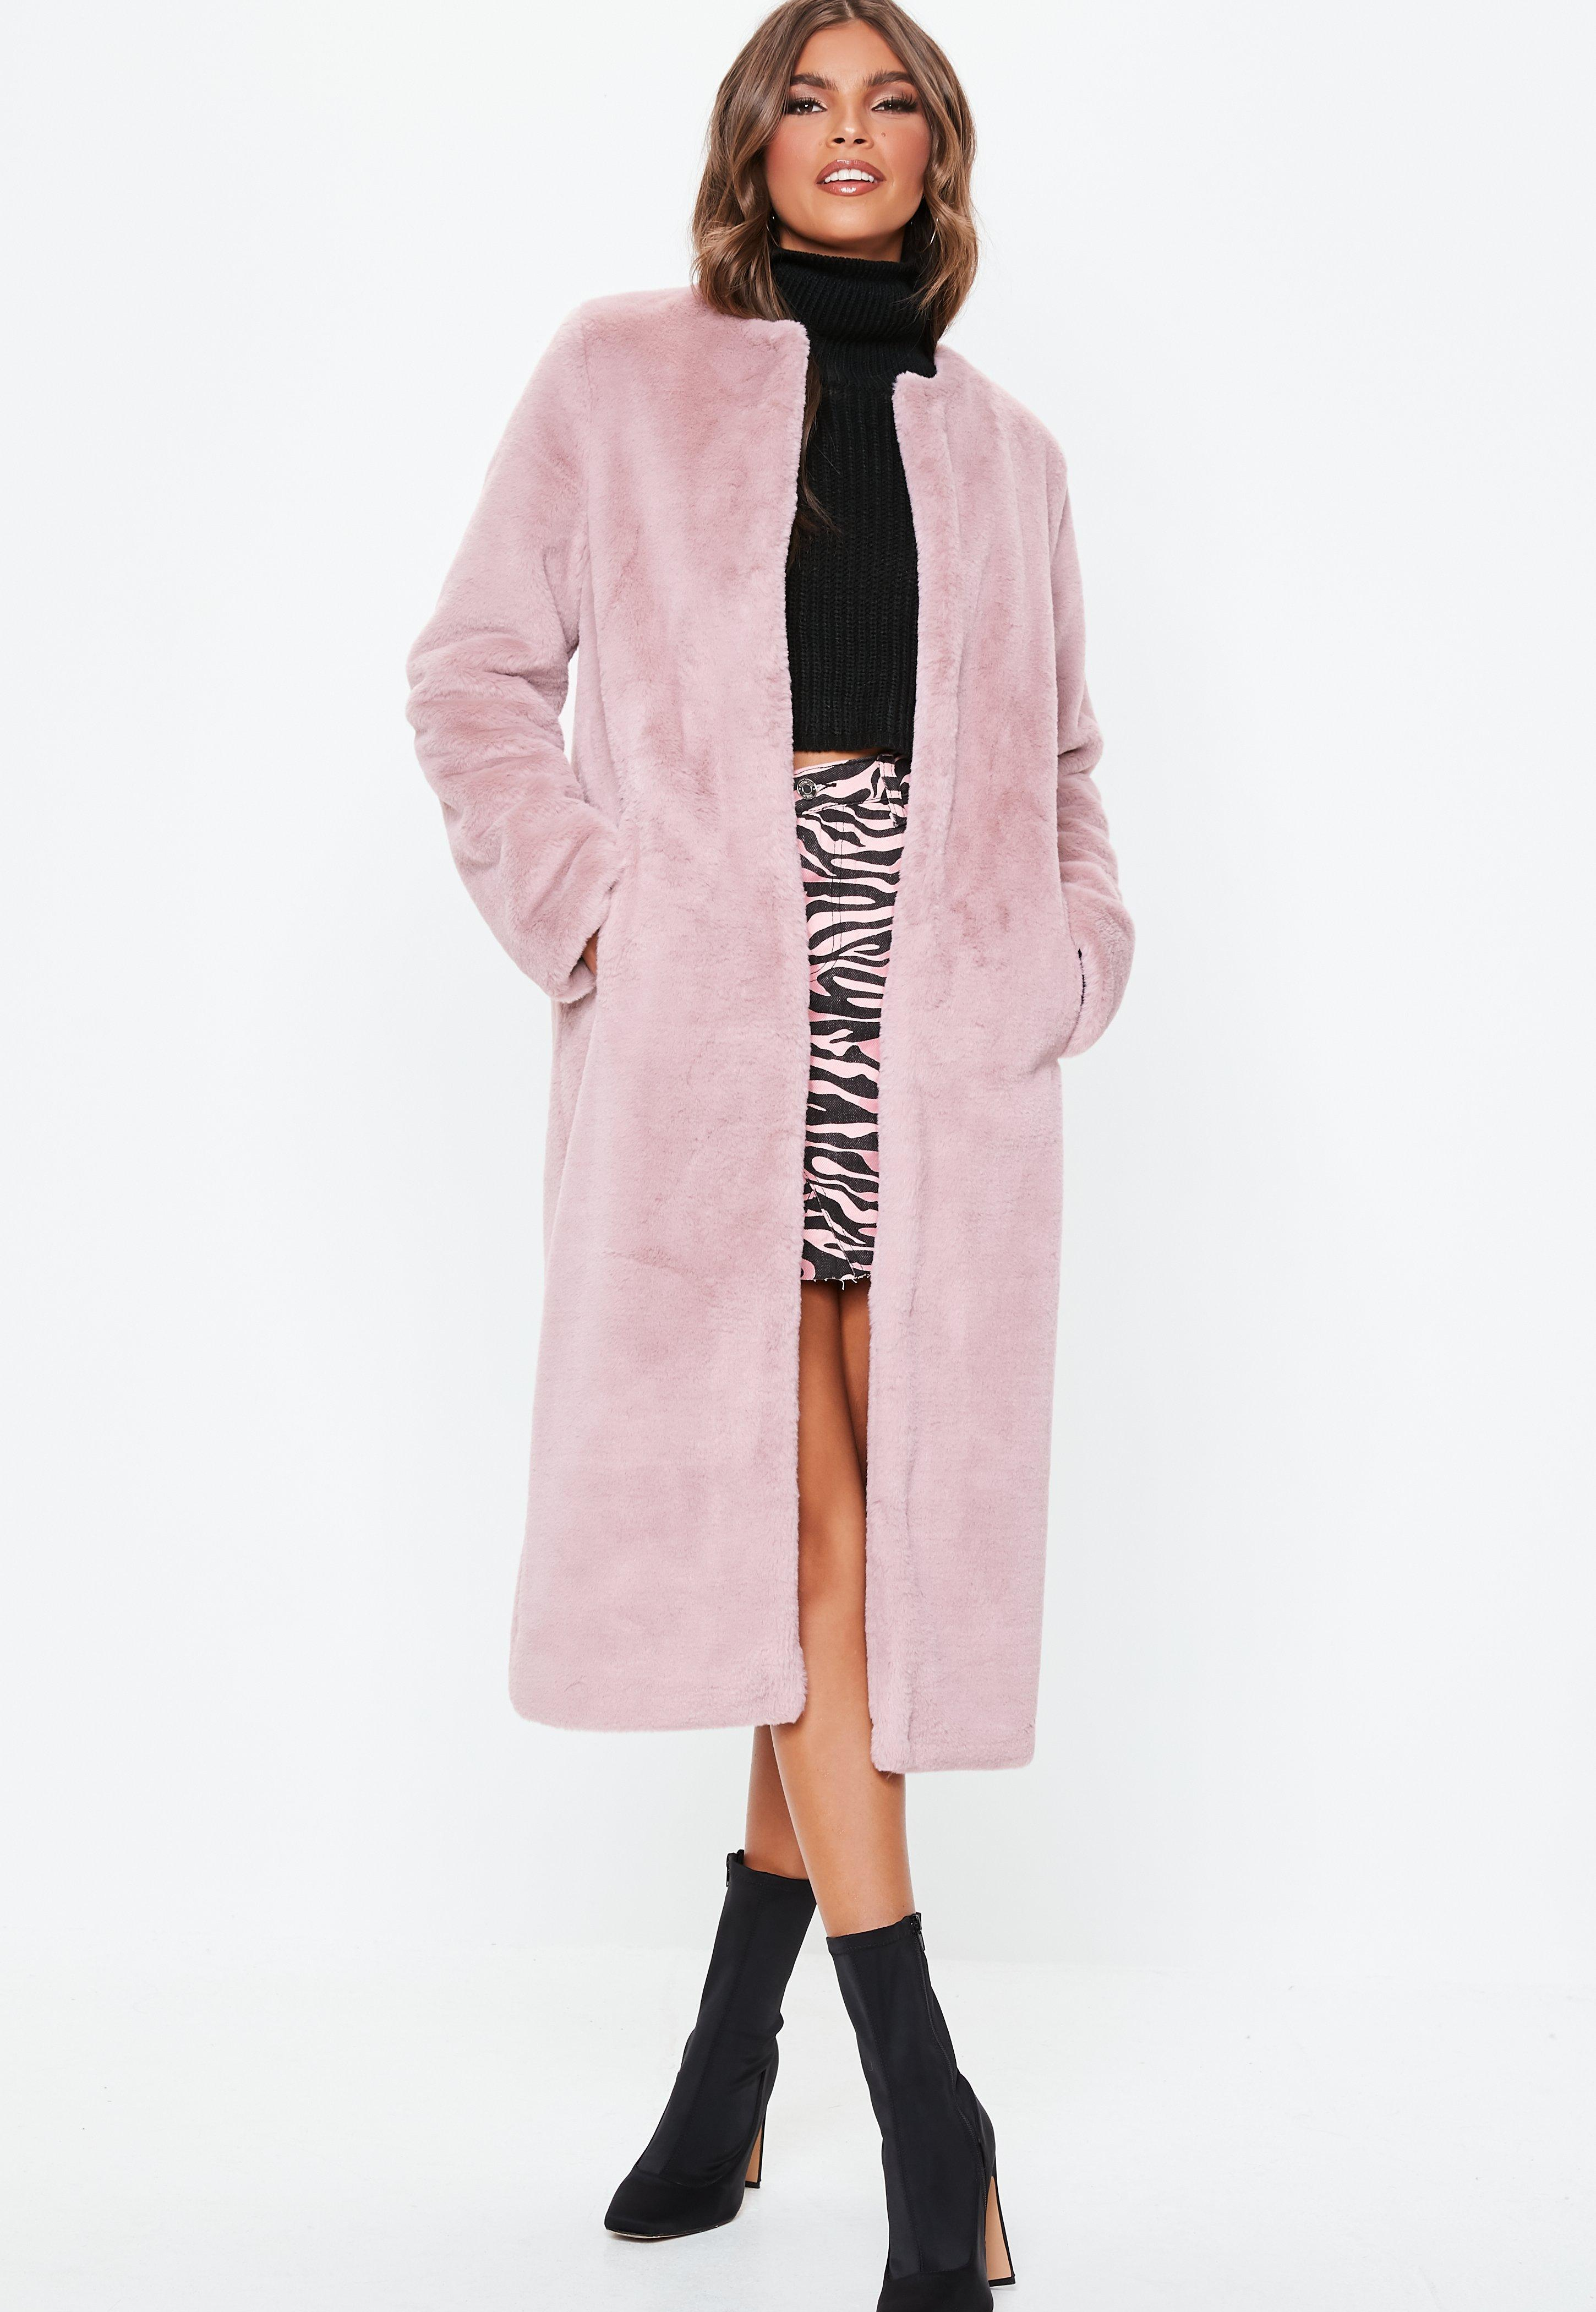 9b8adefb2c16 Missguided Pink Collarless Longline Faux Fur Coat in Pink - Lyst